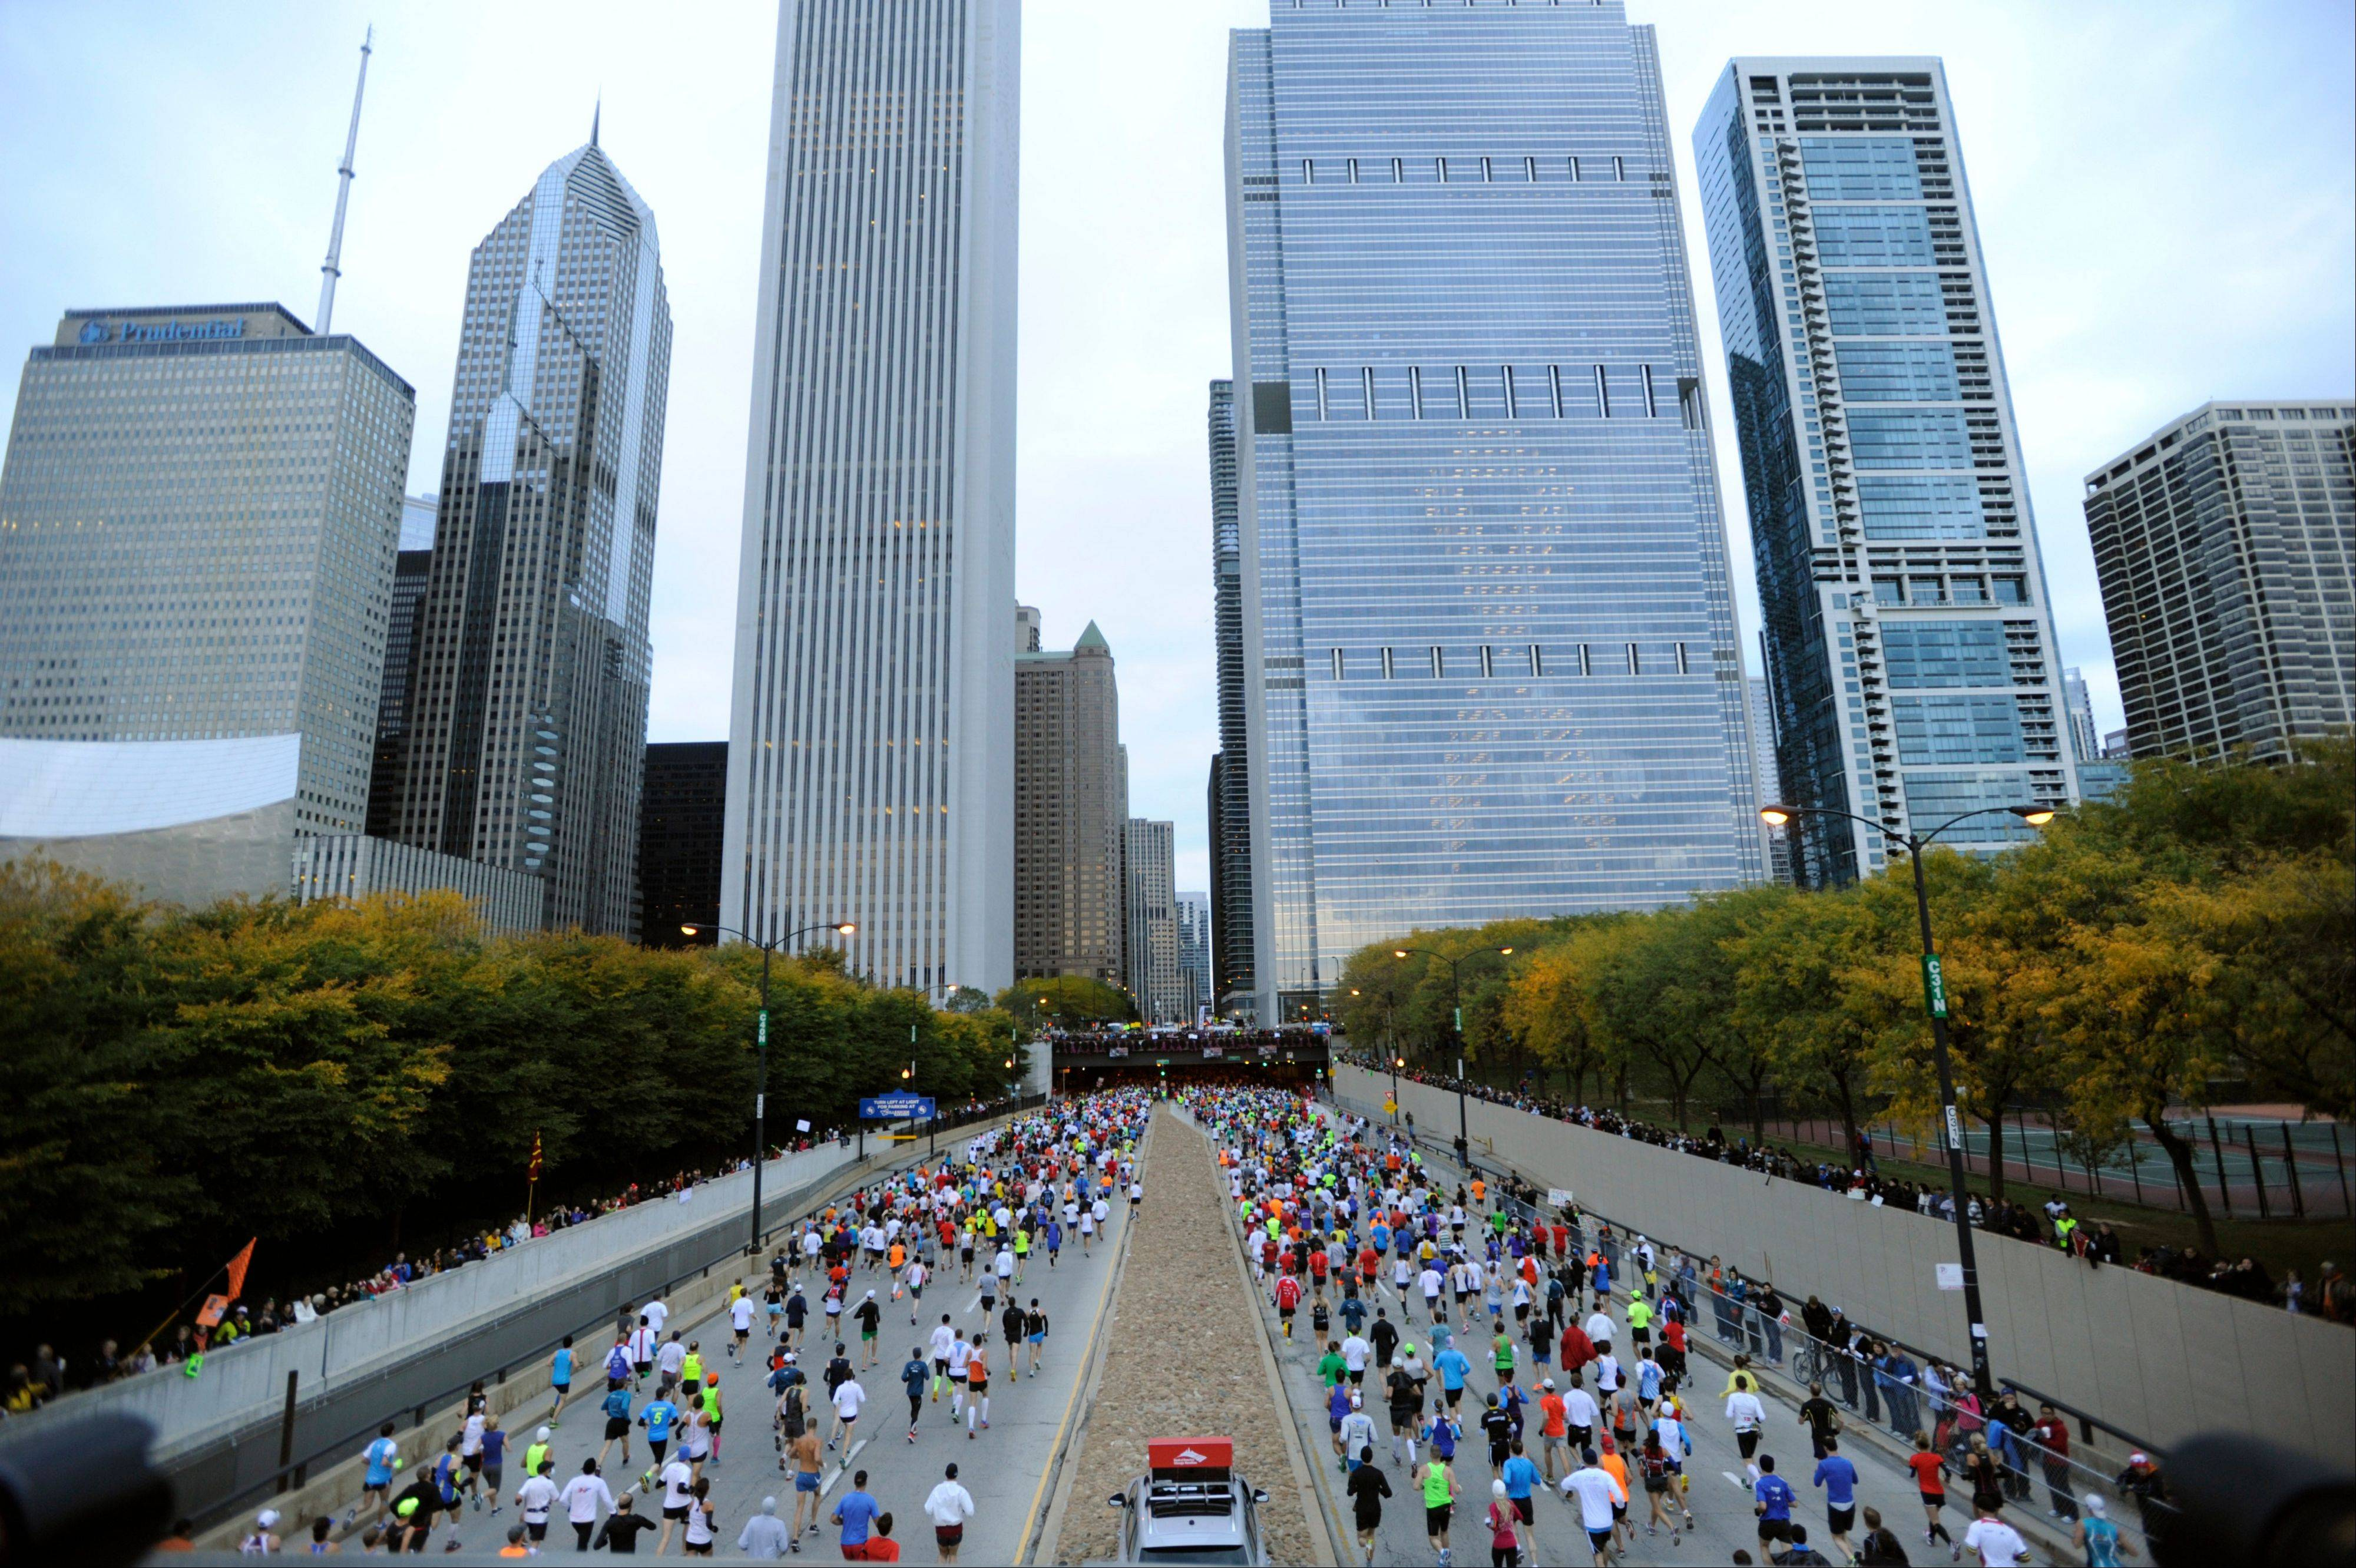 Runners start the 2012 Chicago Marathon Sunday, Oct. 7, 2012. With 42-degree temperatures at the start, the conditions were good for a race marked by tragedy and mishap in recent years.